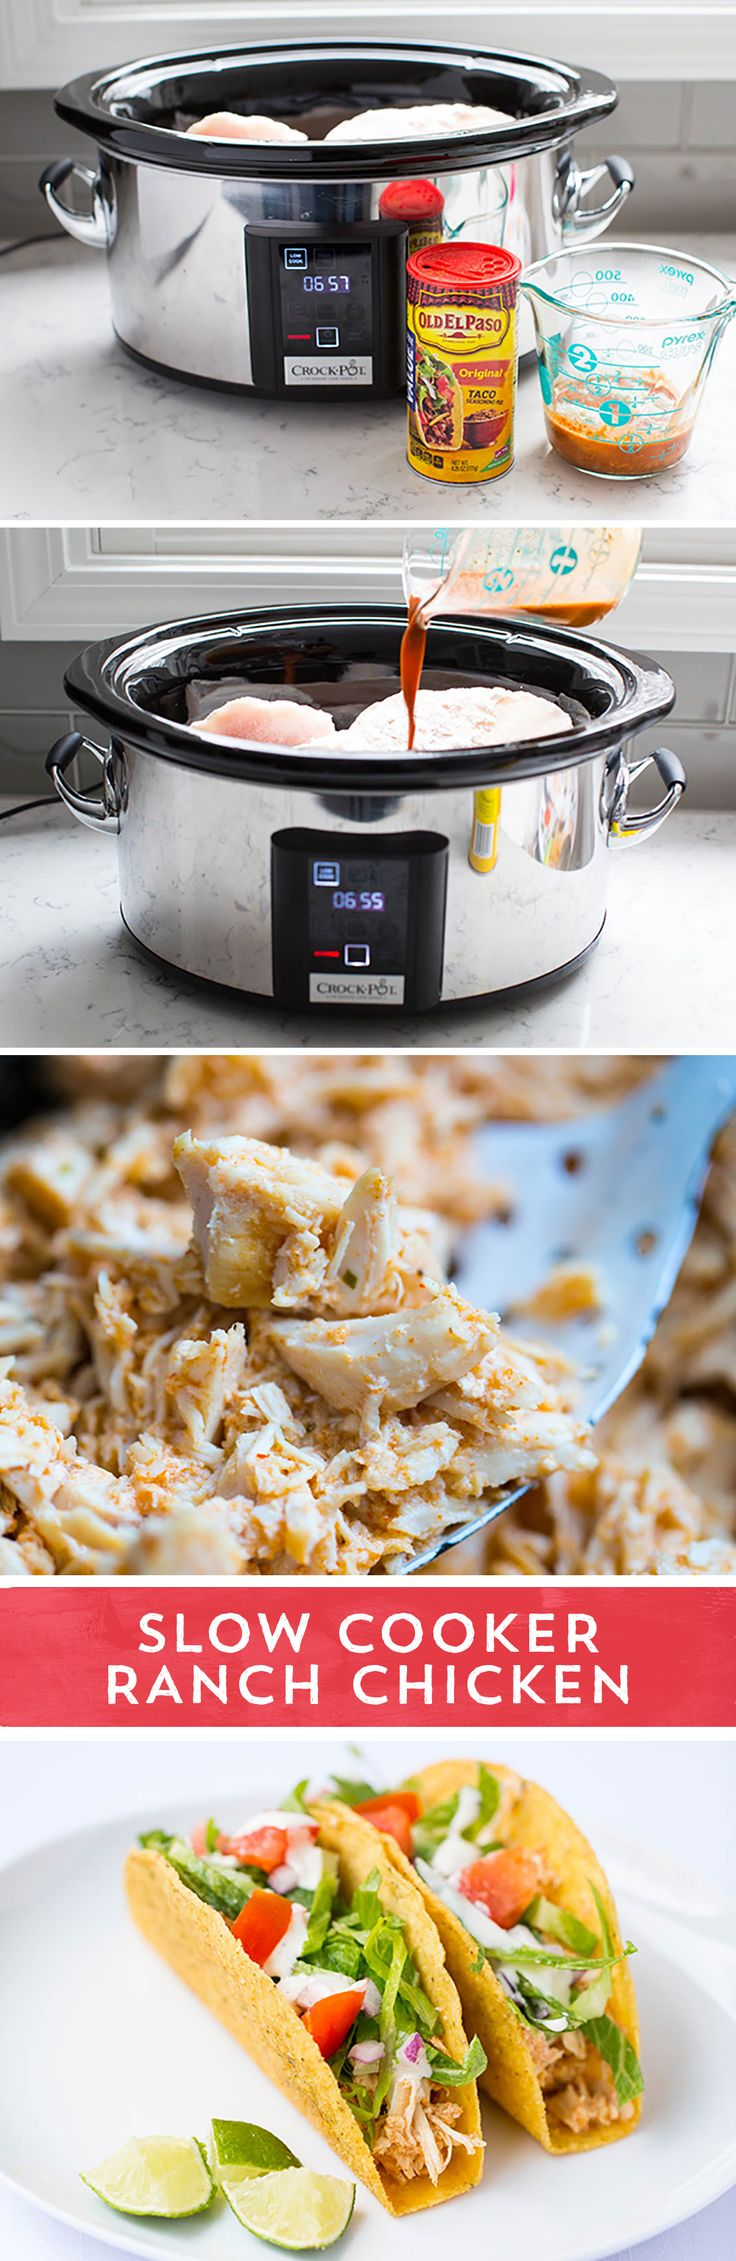 Need enough food to feed a crowd for the big game? Look no further than this Slow Cooker Ranch Chicken from @iheartnaptime to feed your hungry crowd! This chicken is fall-apart tender, packed with zesty spices, and is perfect in Ranch Taco Shells, or a make-your-own-taco-bar for game day!